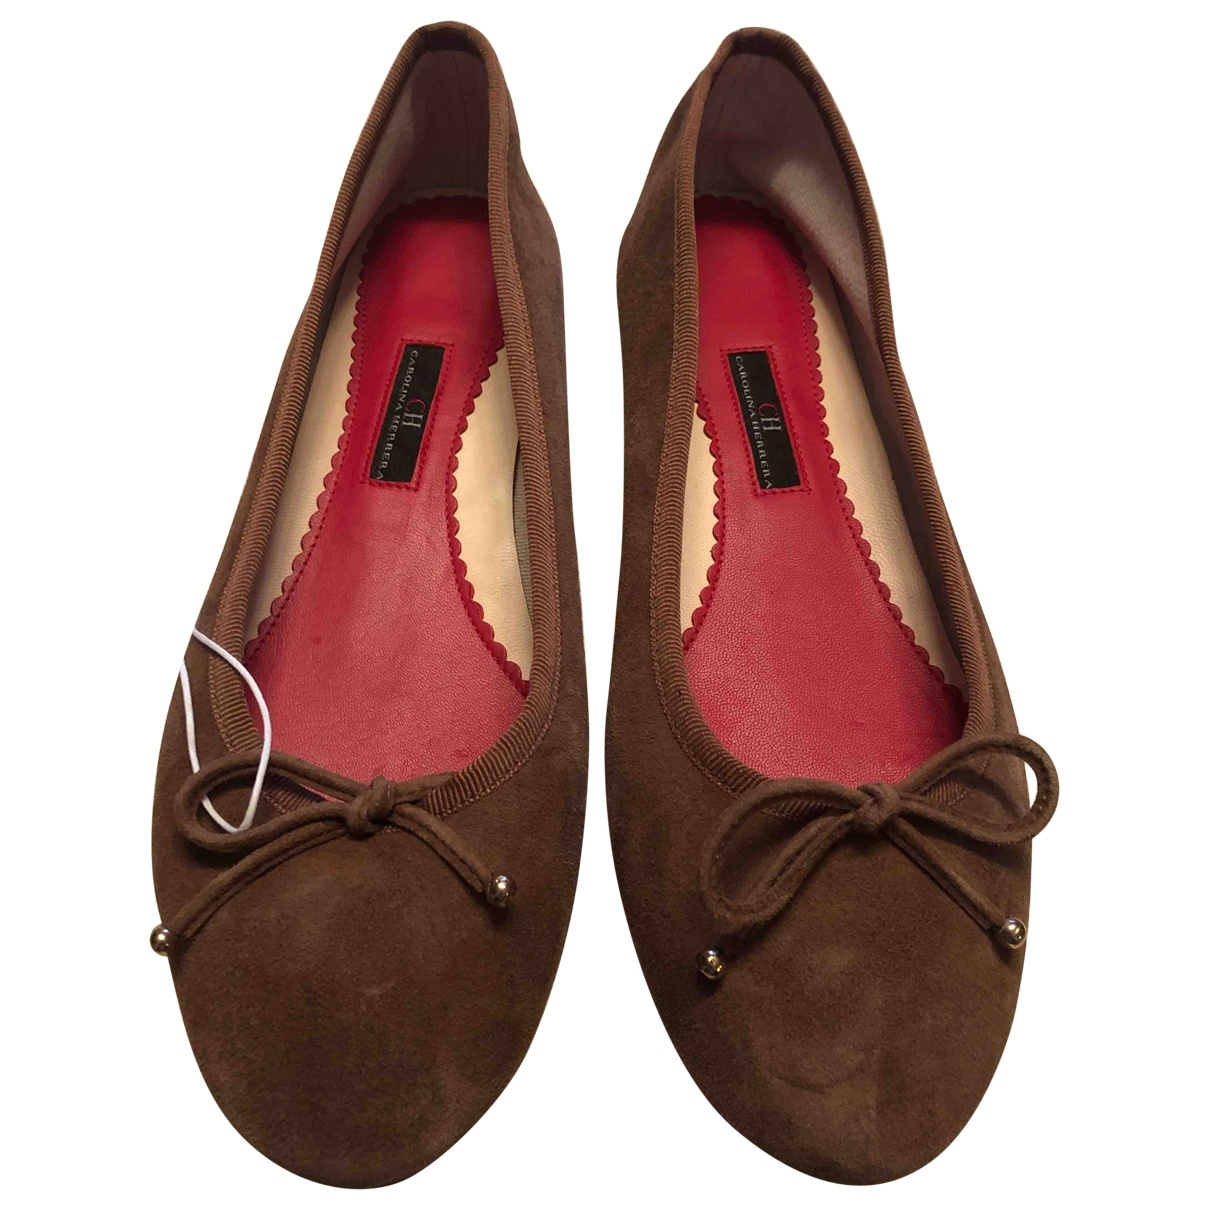 Carolina Herrera \N Brown Suede Ballet flats for Women 40 EU